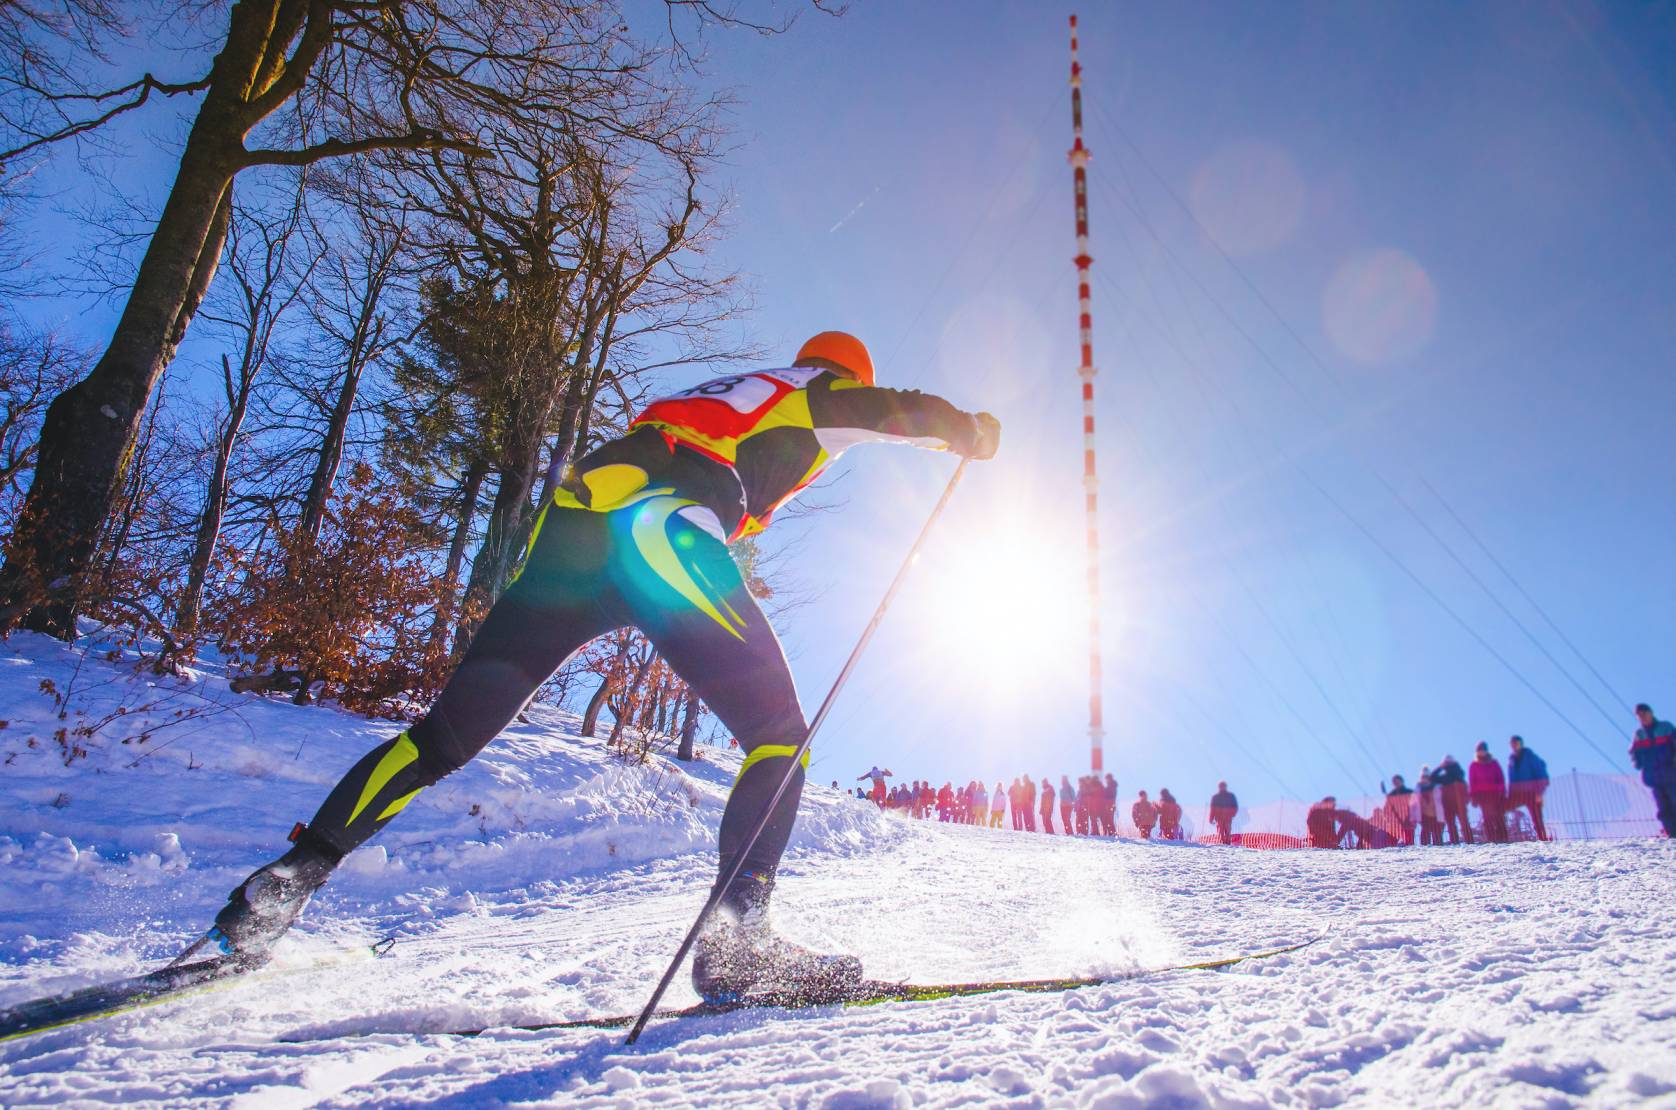 nordic skier traveling uphill training for Olympics